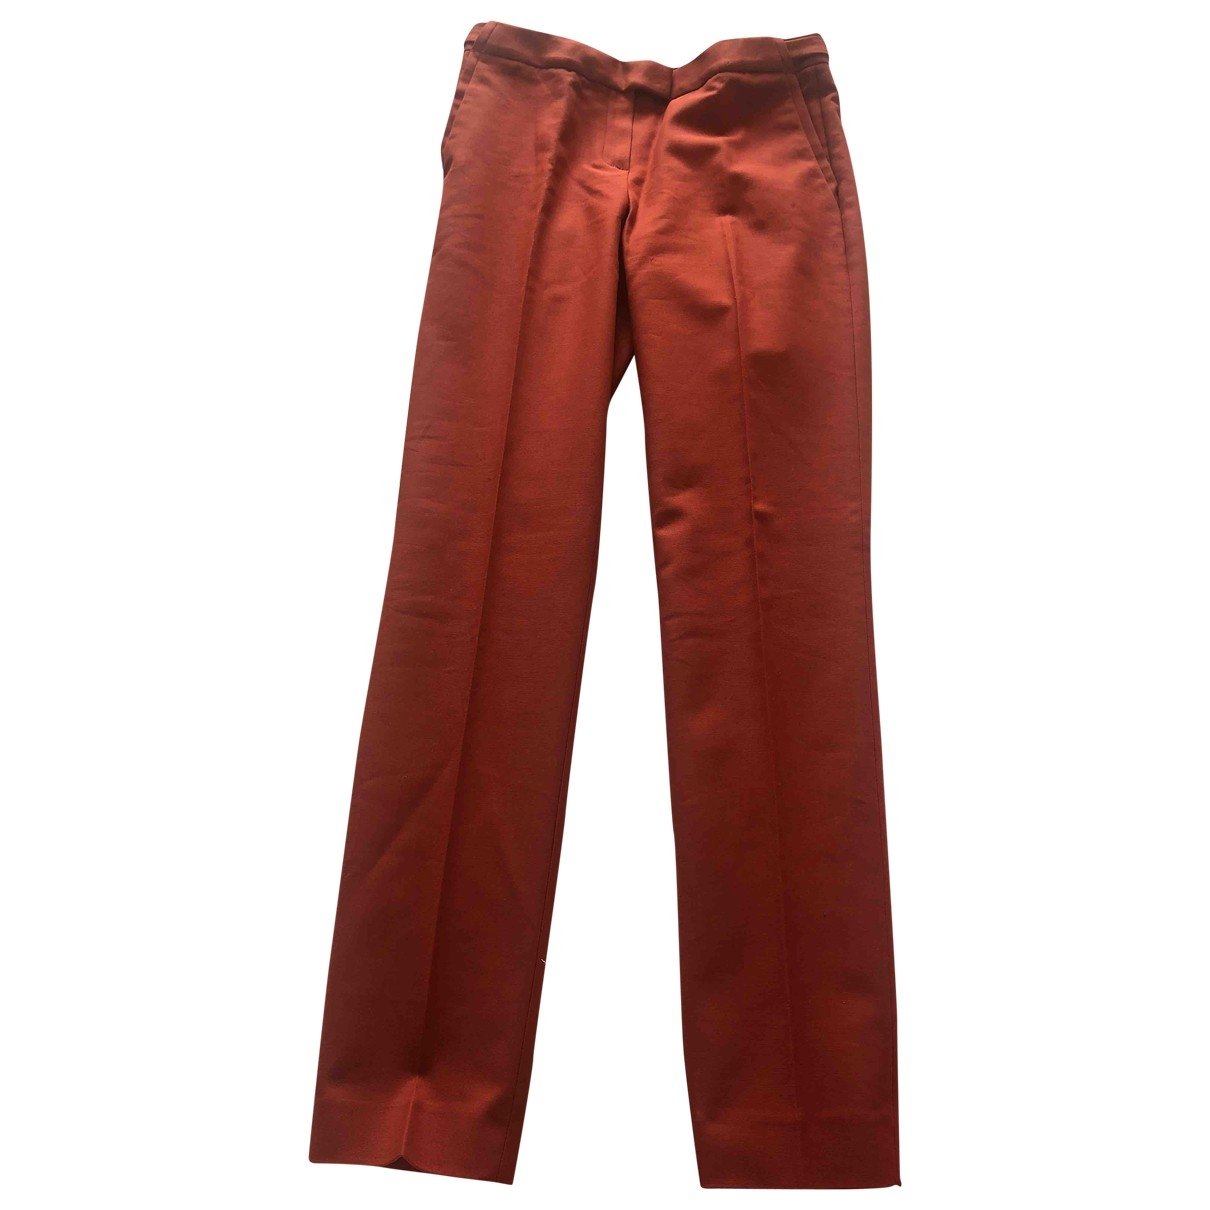 Massimo Dutti \N Cotton Trousers for Women 36 IT